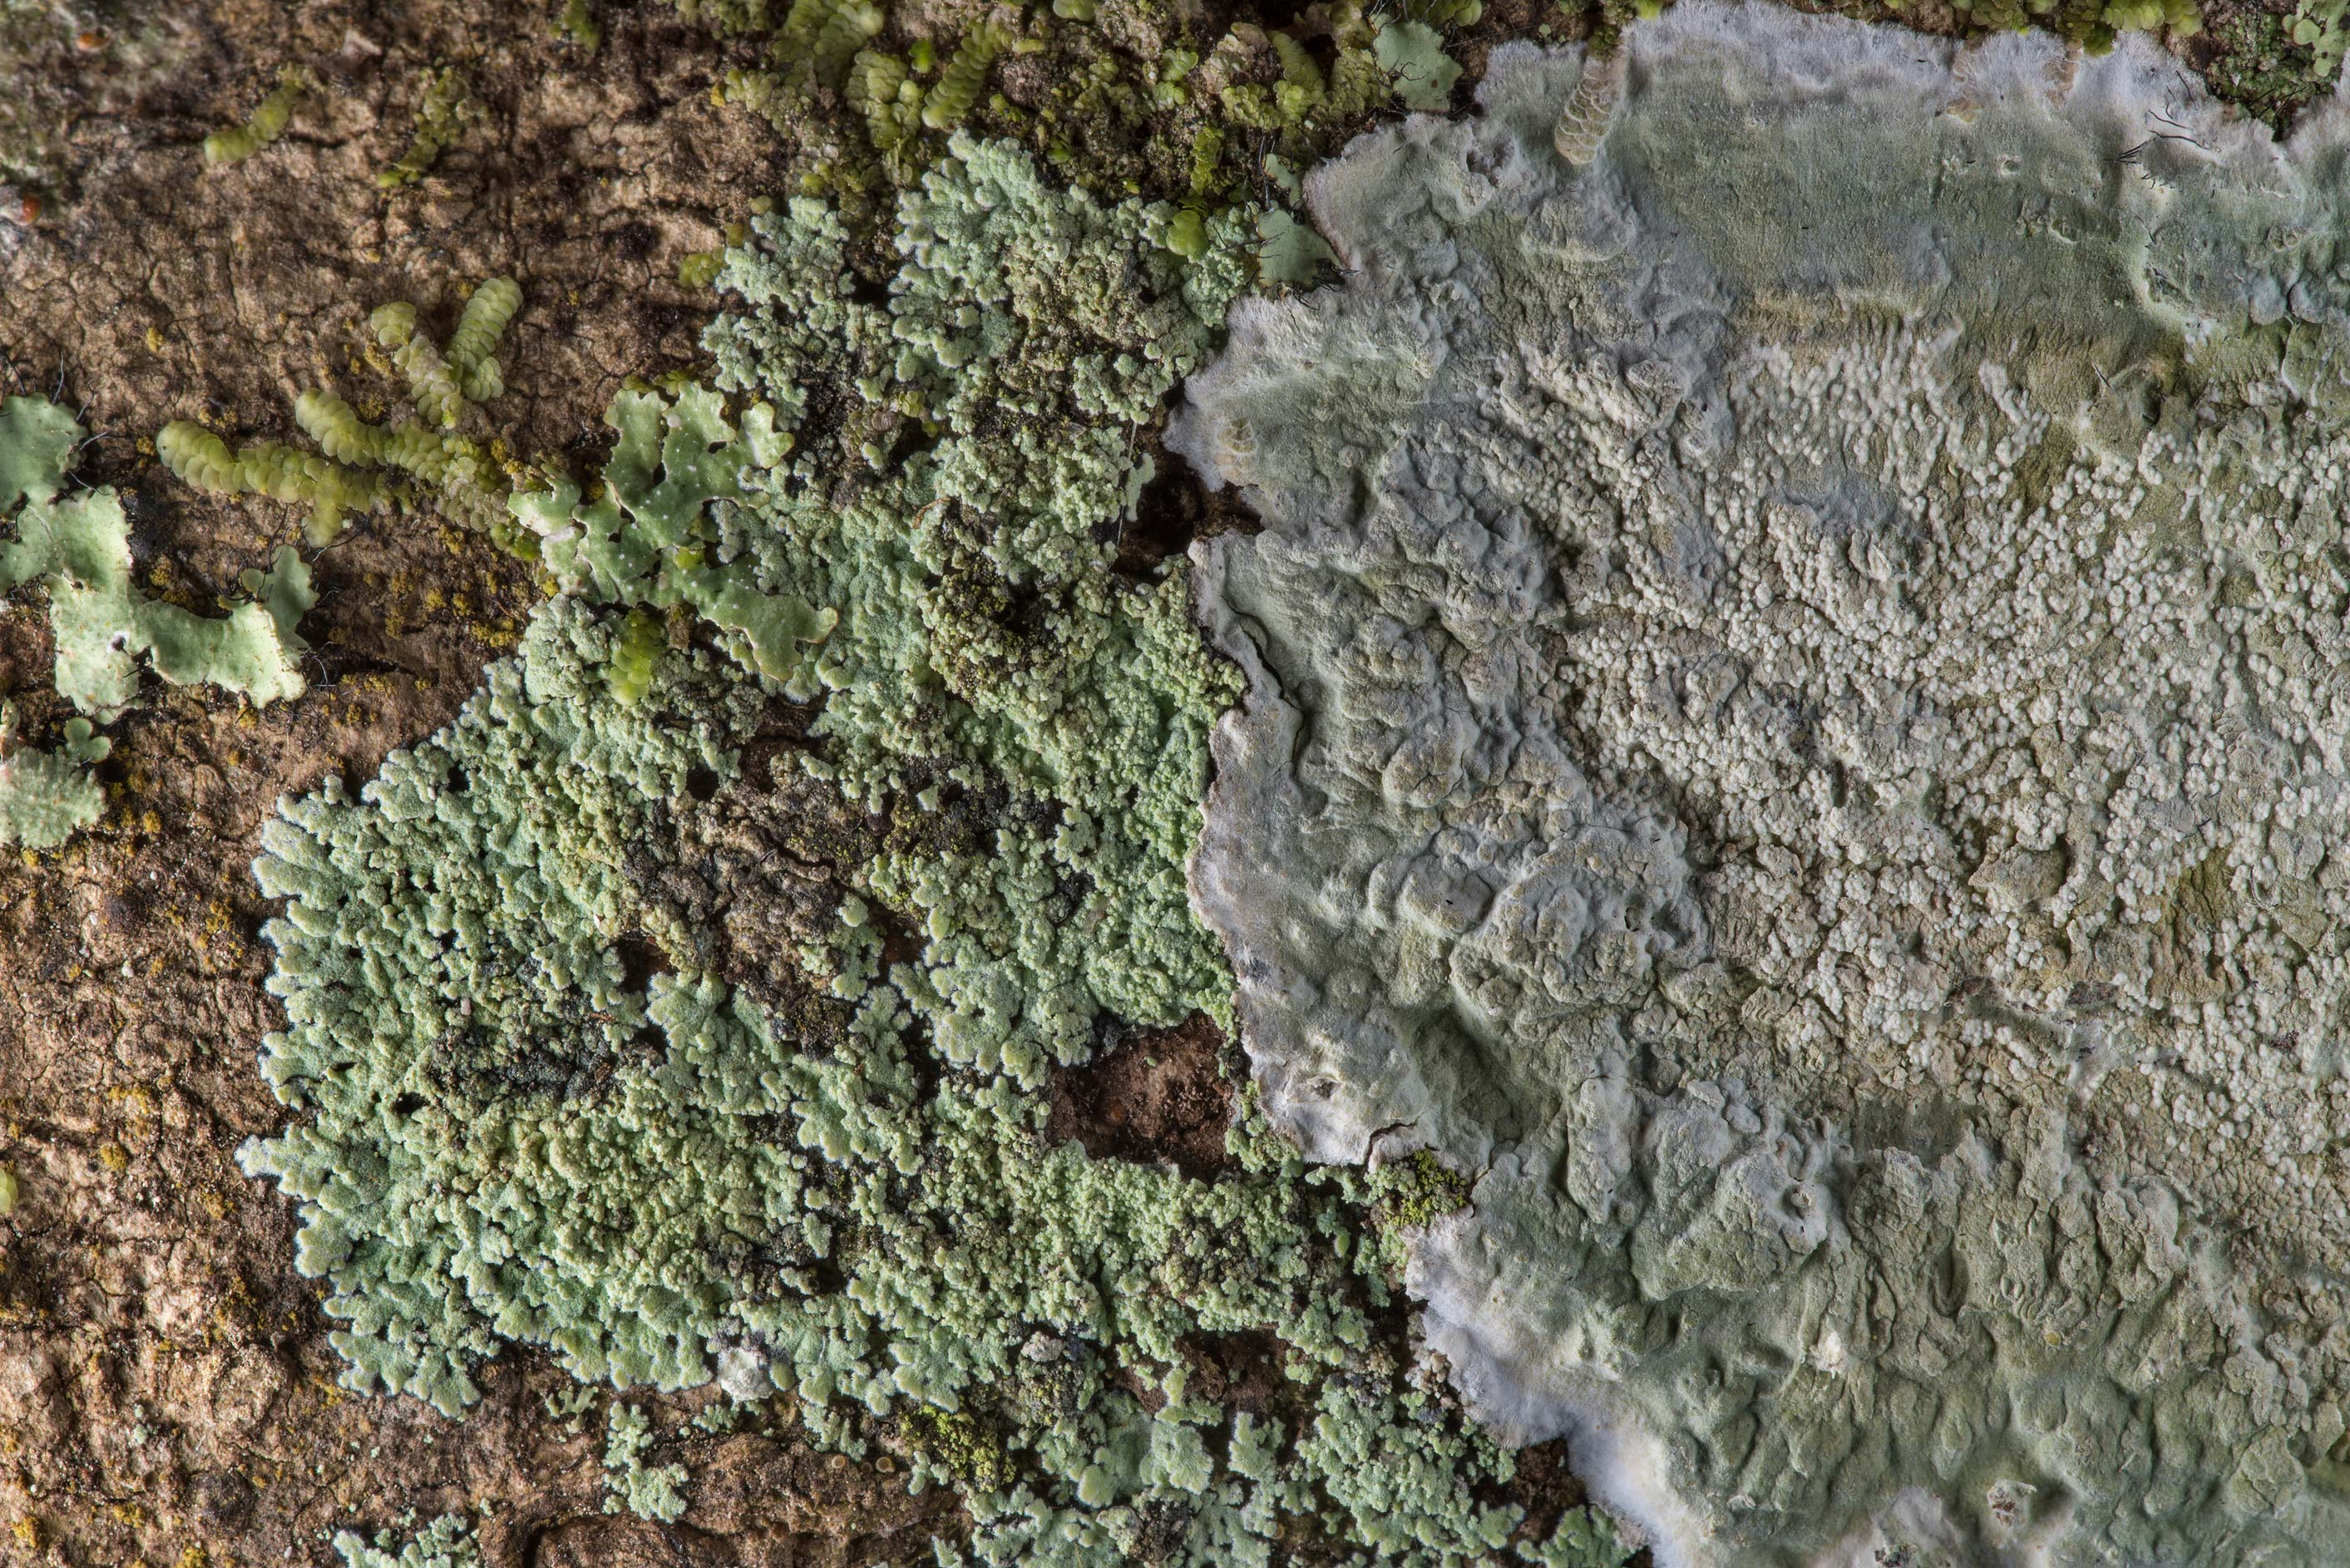 Lobed cotton lichen (Crocynia pyxinoides) and...National Forest. Shepherd, Texas